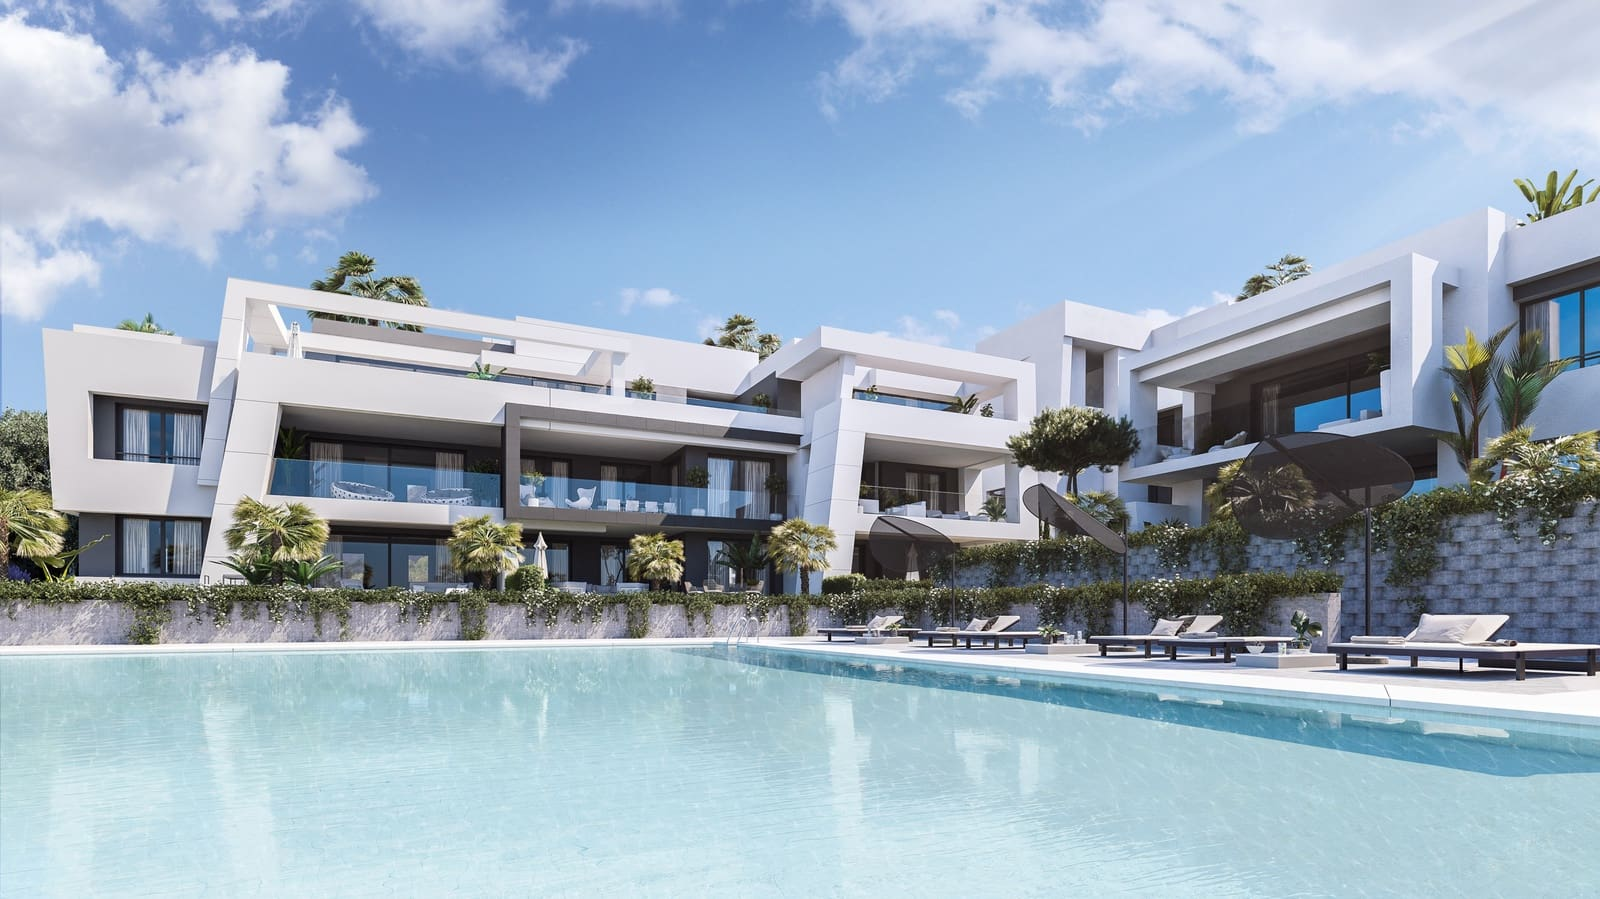 2 bedroom Apartment for sale in Estepona with pool garage - € 269,000 (Ref: 4860474)